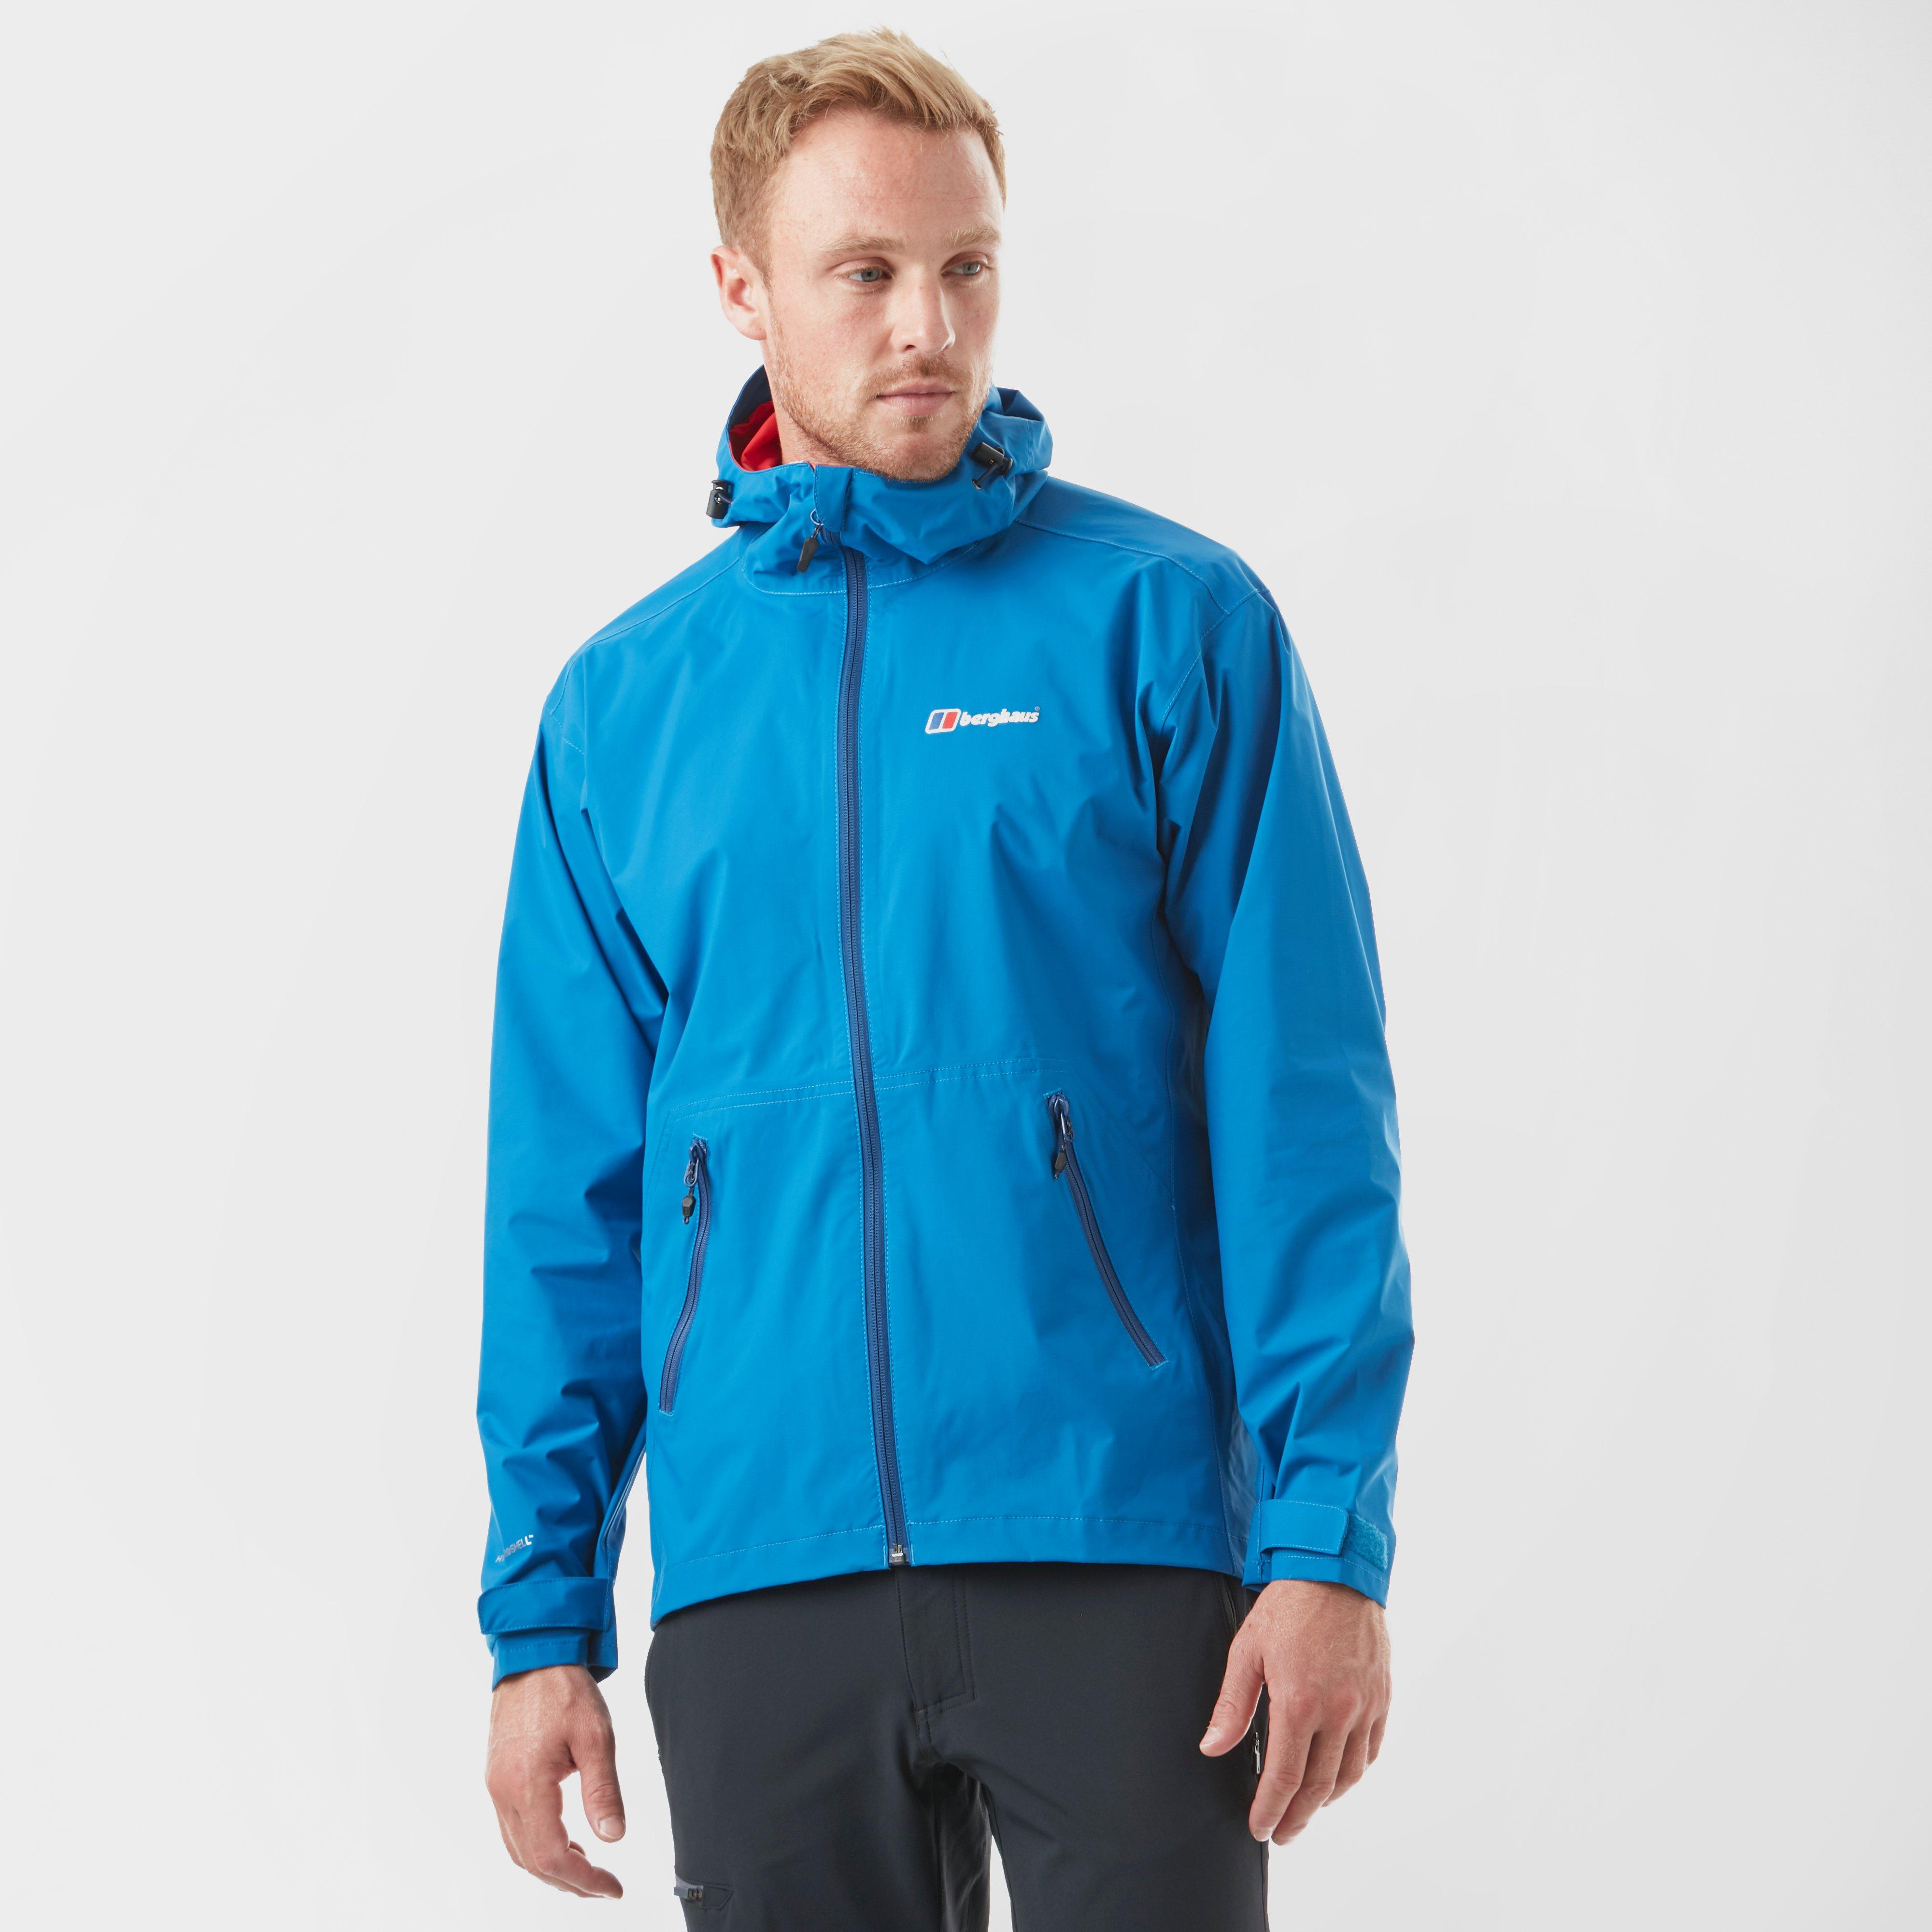 b897bef24 Berghaus Stormcloud Jacket – Women's | Compare outdoor jacket prices ...